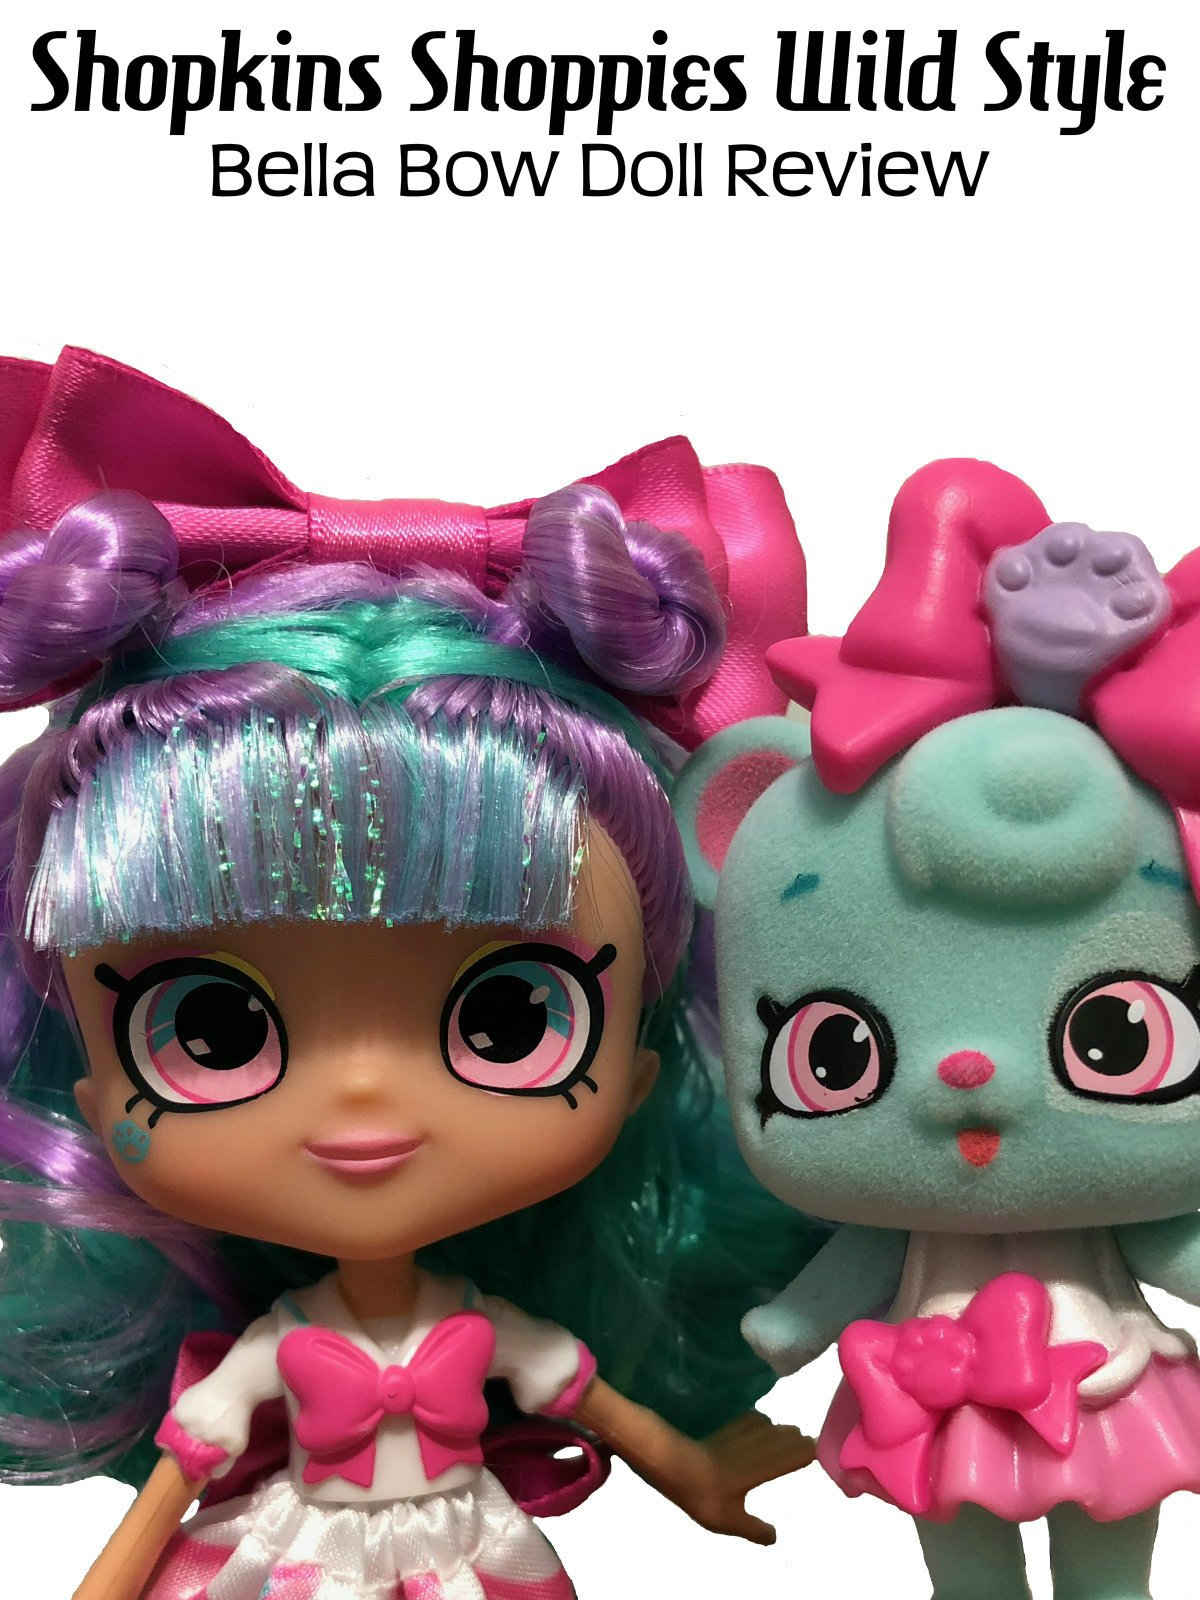 Review: Shopkins Shoppies Wild Style Bella Bow Doll Review